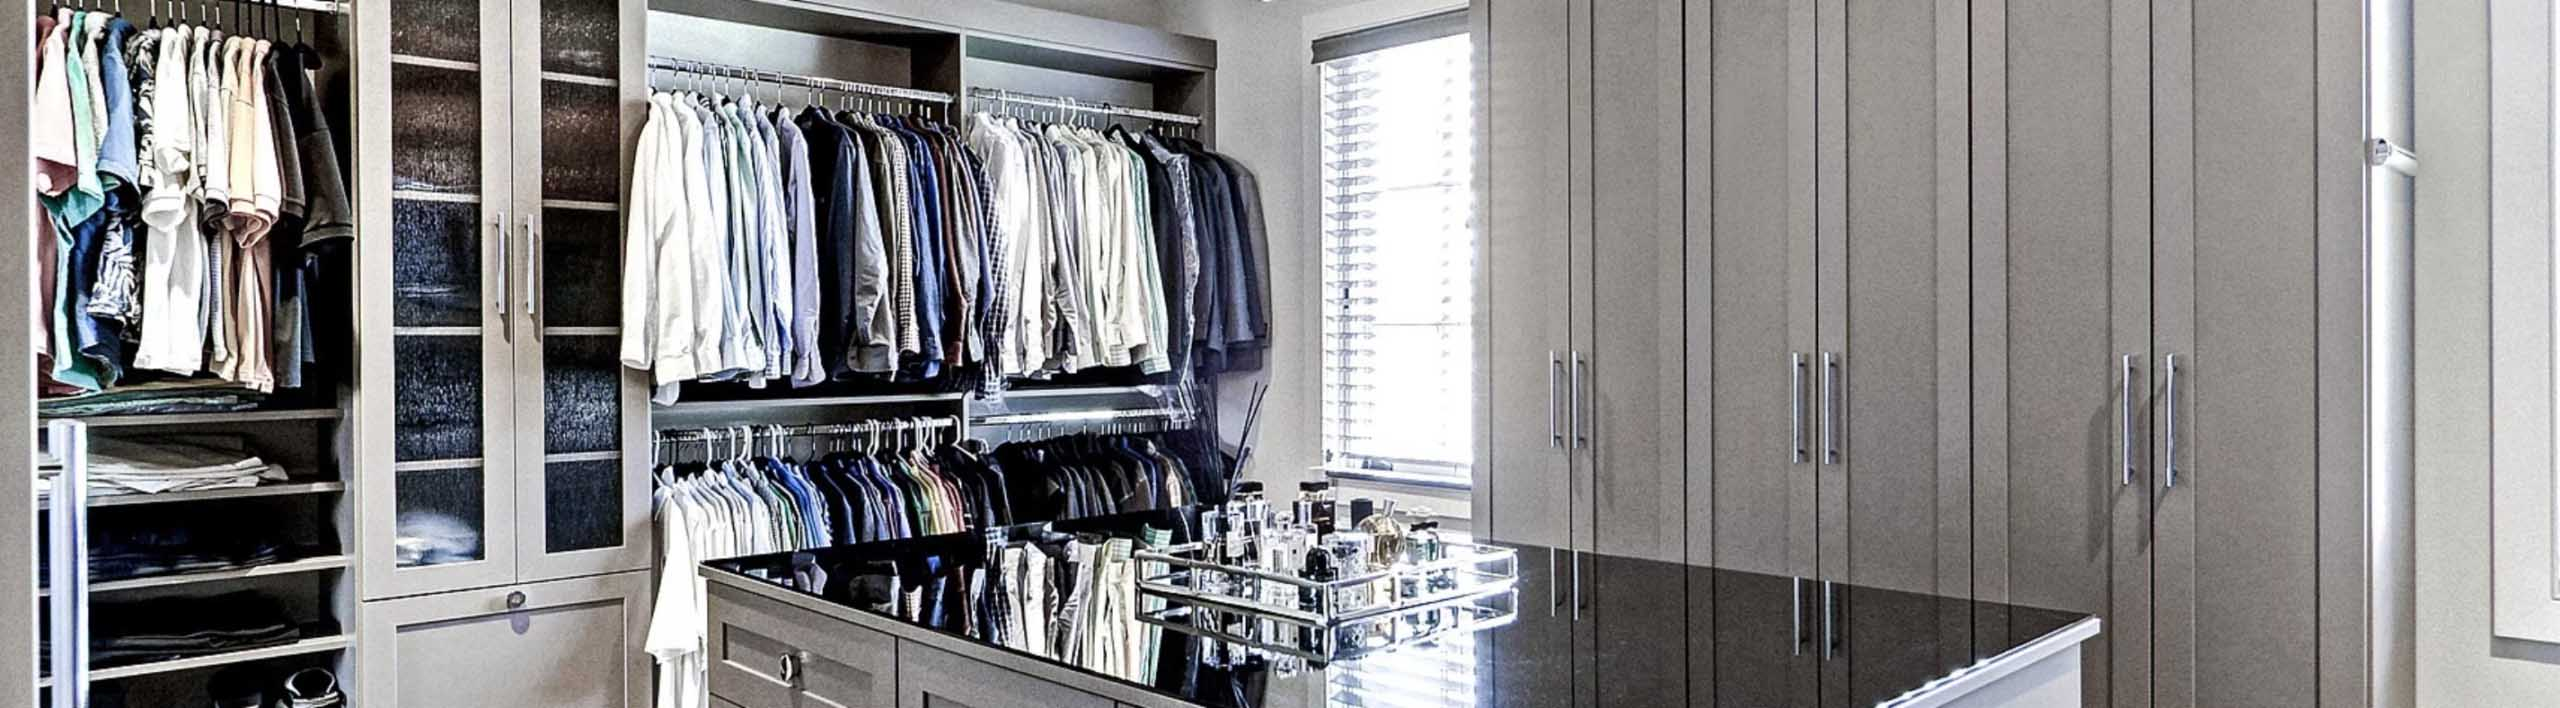 Walk In Closet with center island